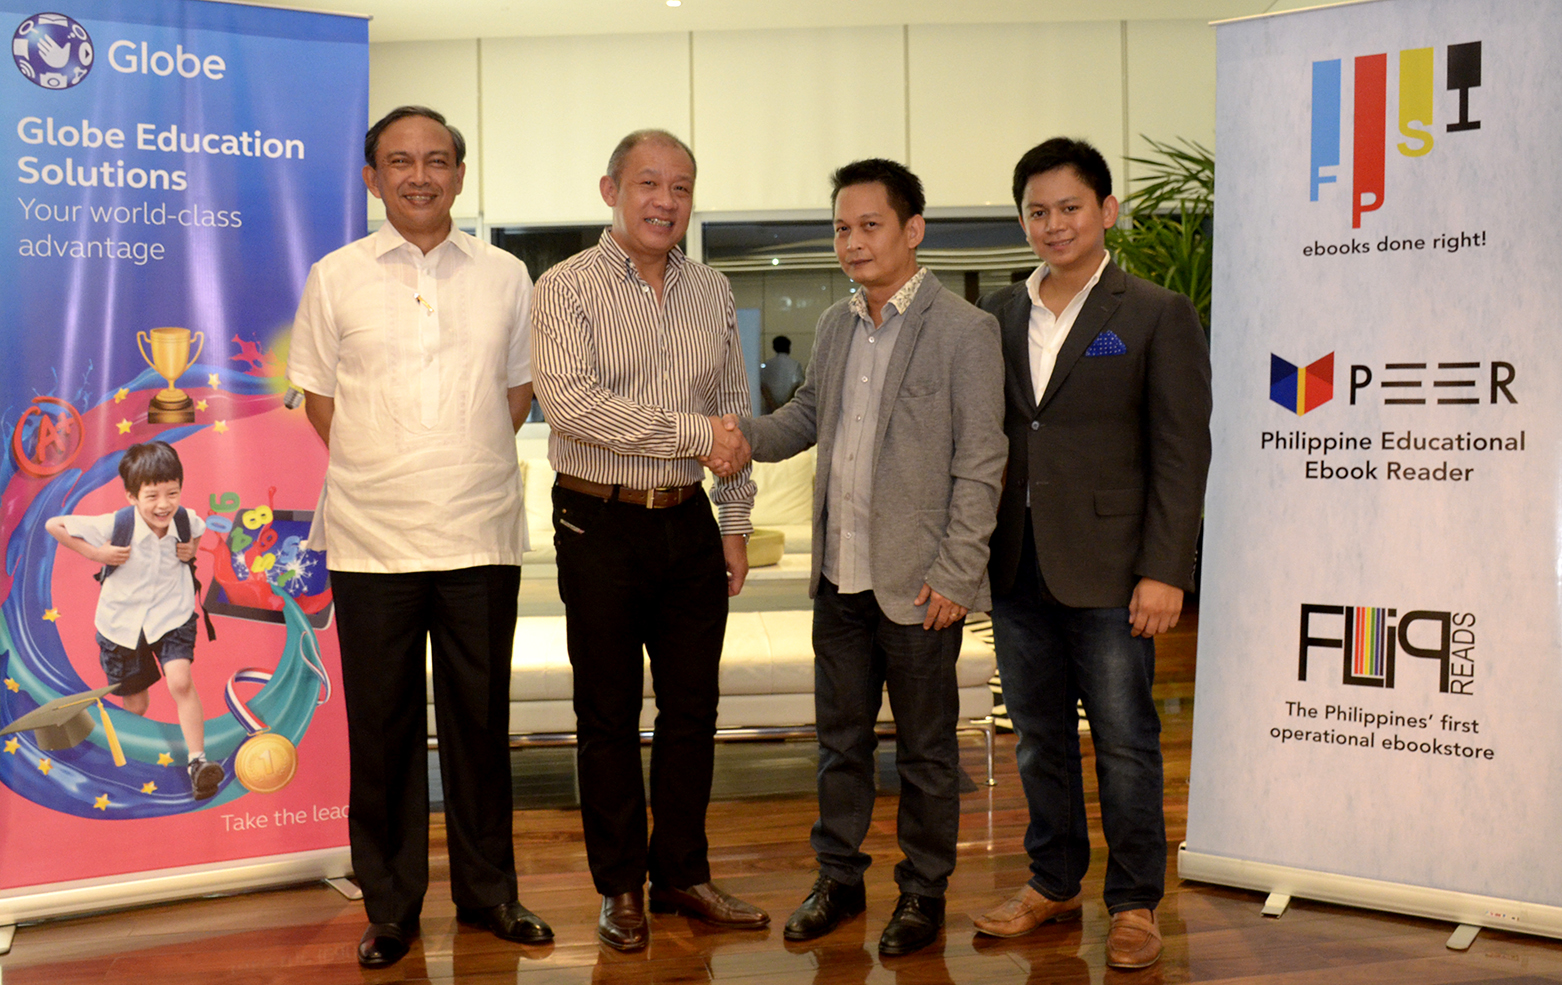 Globe-Flipside alliance to boost e-books adoption for PHL mEducation, eLearning